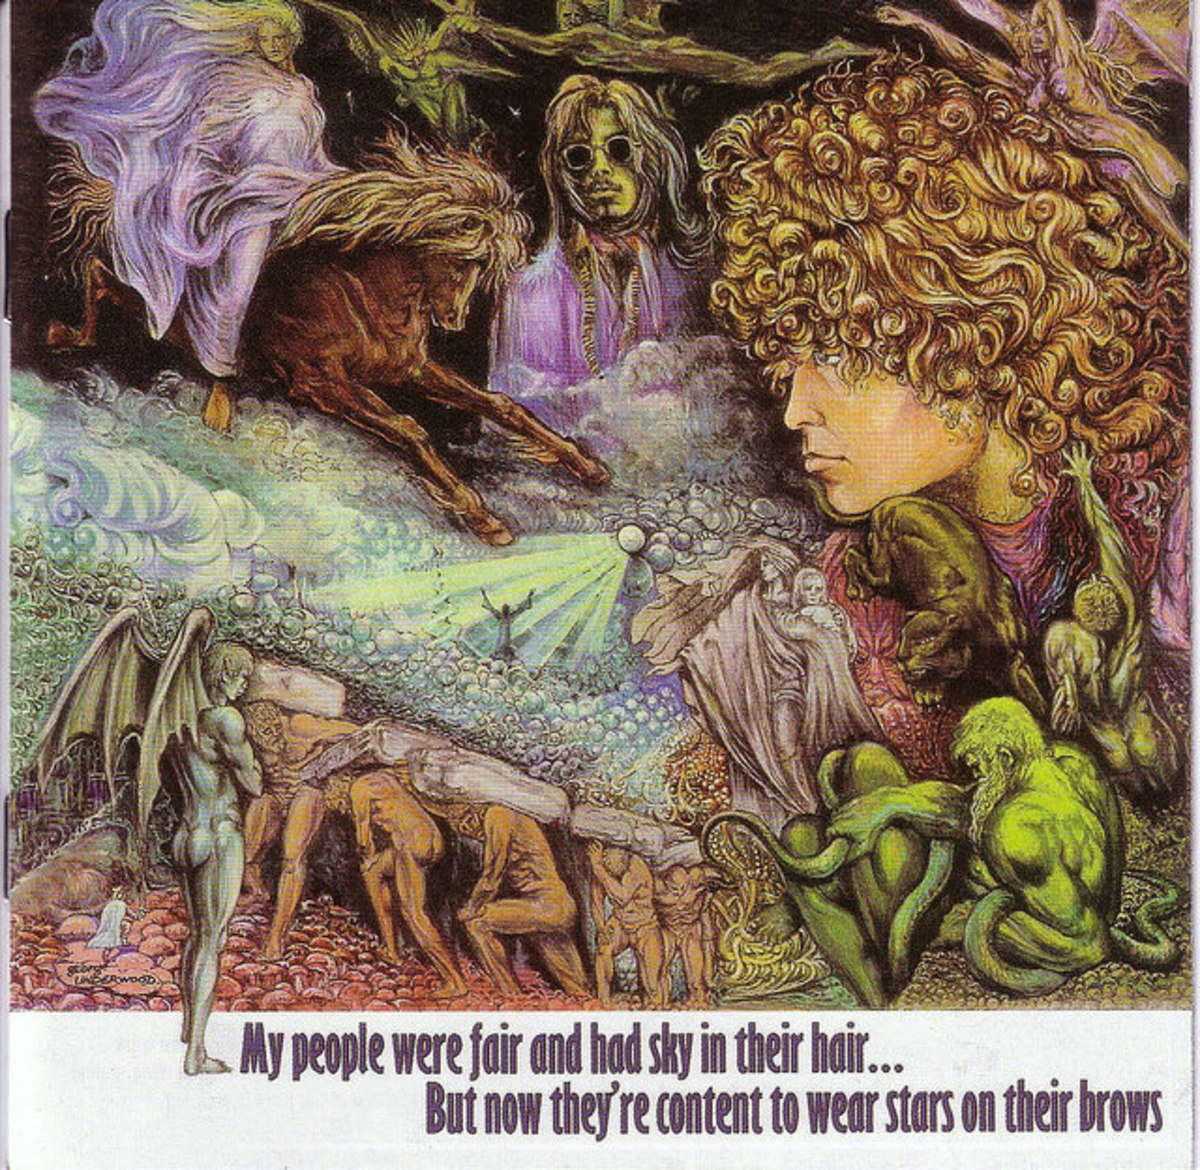 """Tyrannosaurus Rex """"My People Were Fair And Had Sky In Their Hair... """" Regal Zonophone Records SLRZ 1003 12"""" LP Vinyl Record, UK Pressing (1968)"""